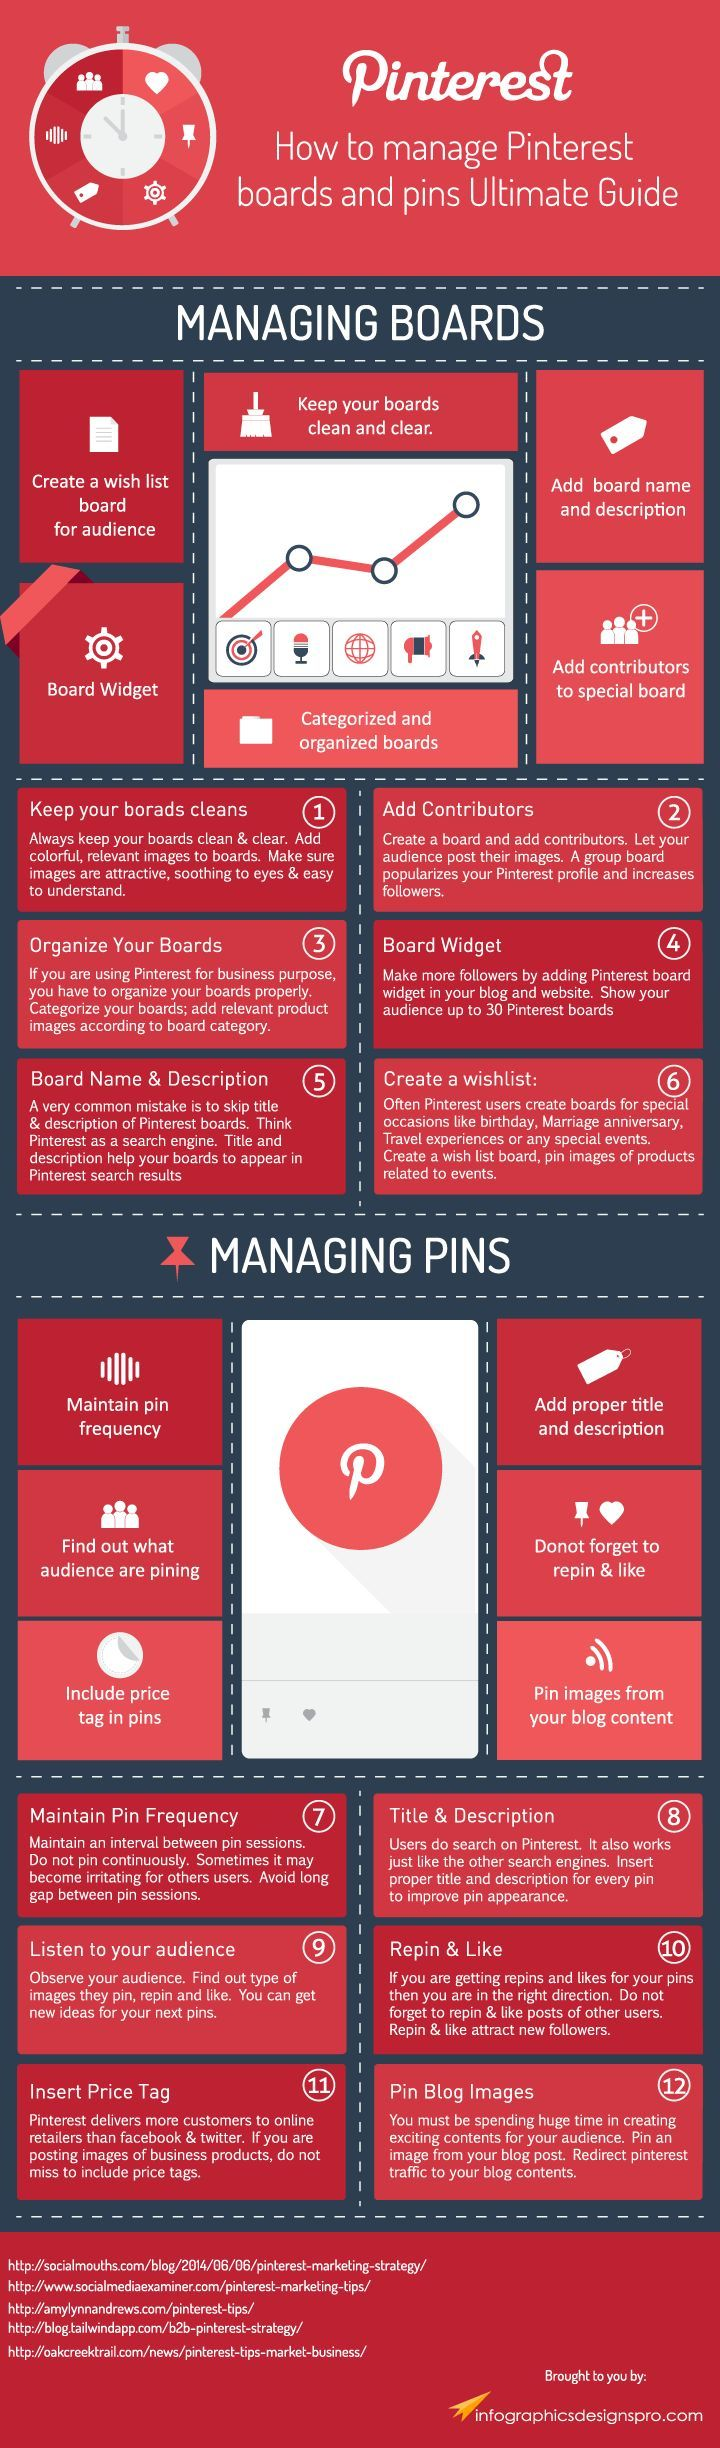 The Art Of Managing Pinterest Pins And Boards: Are you wondering how to keep your Pinterest boards and pins properly organized? Take a look at above infographic from InfographicsDesignsPro to learn the art of managing Pinterest pins and boards for business. | via @Mary Lumley | Pinterest Expert